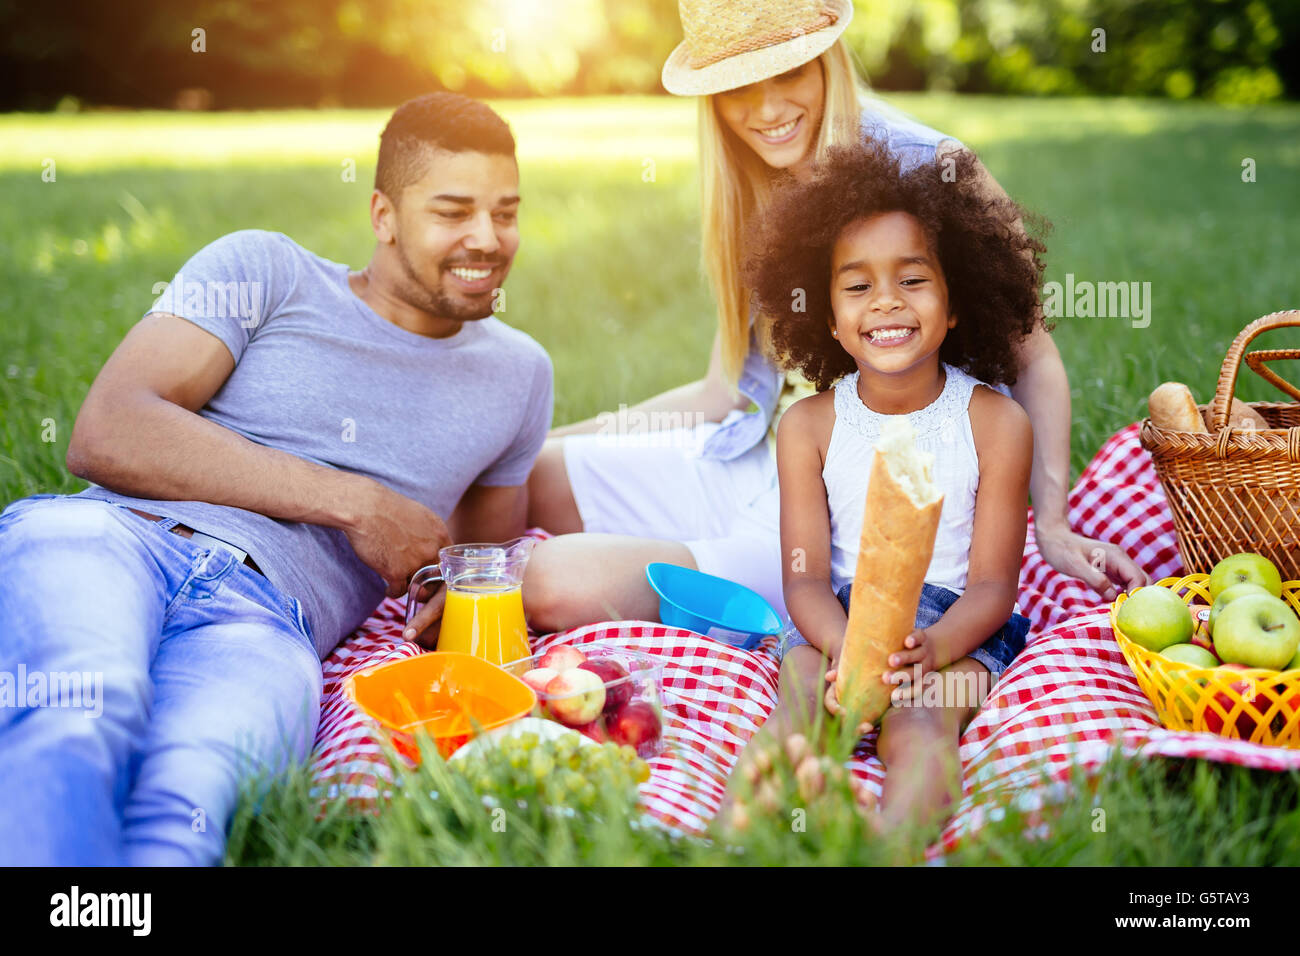 Family picnicking outdoors with their cute daughter - Stock Image